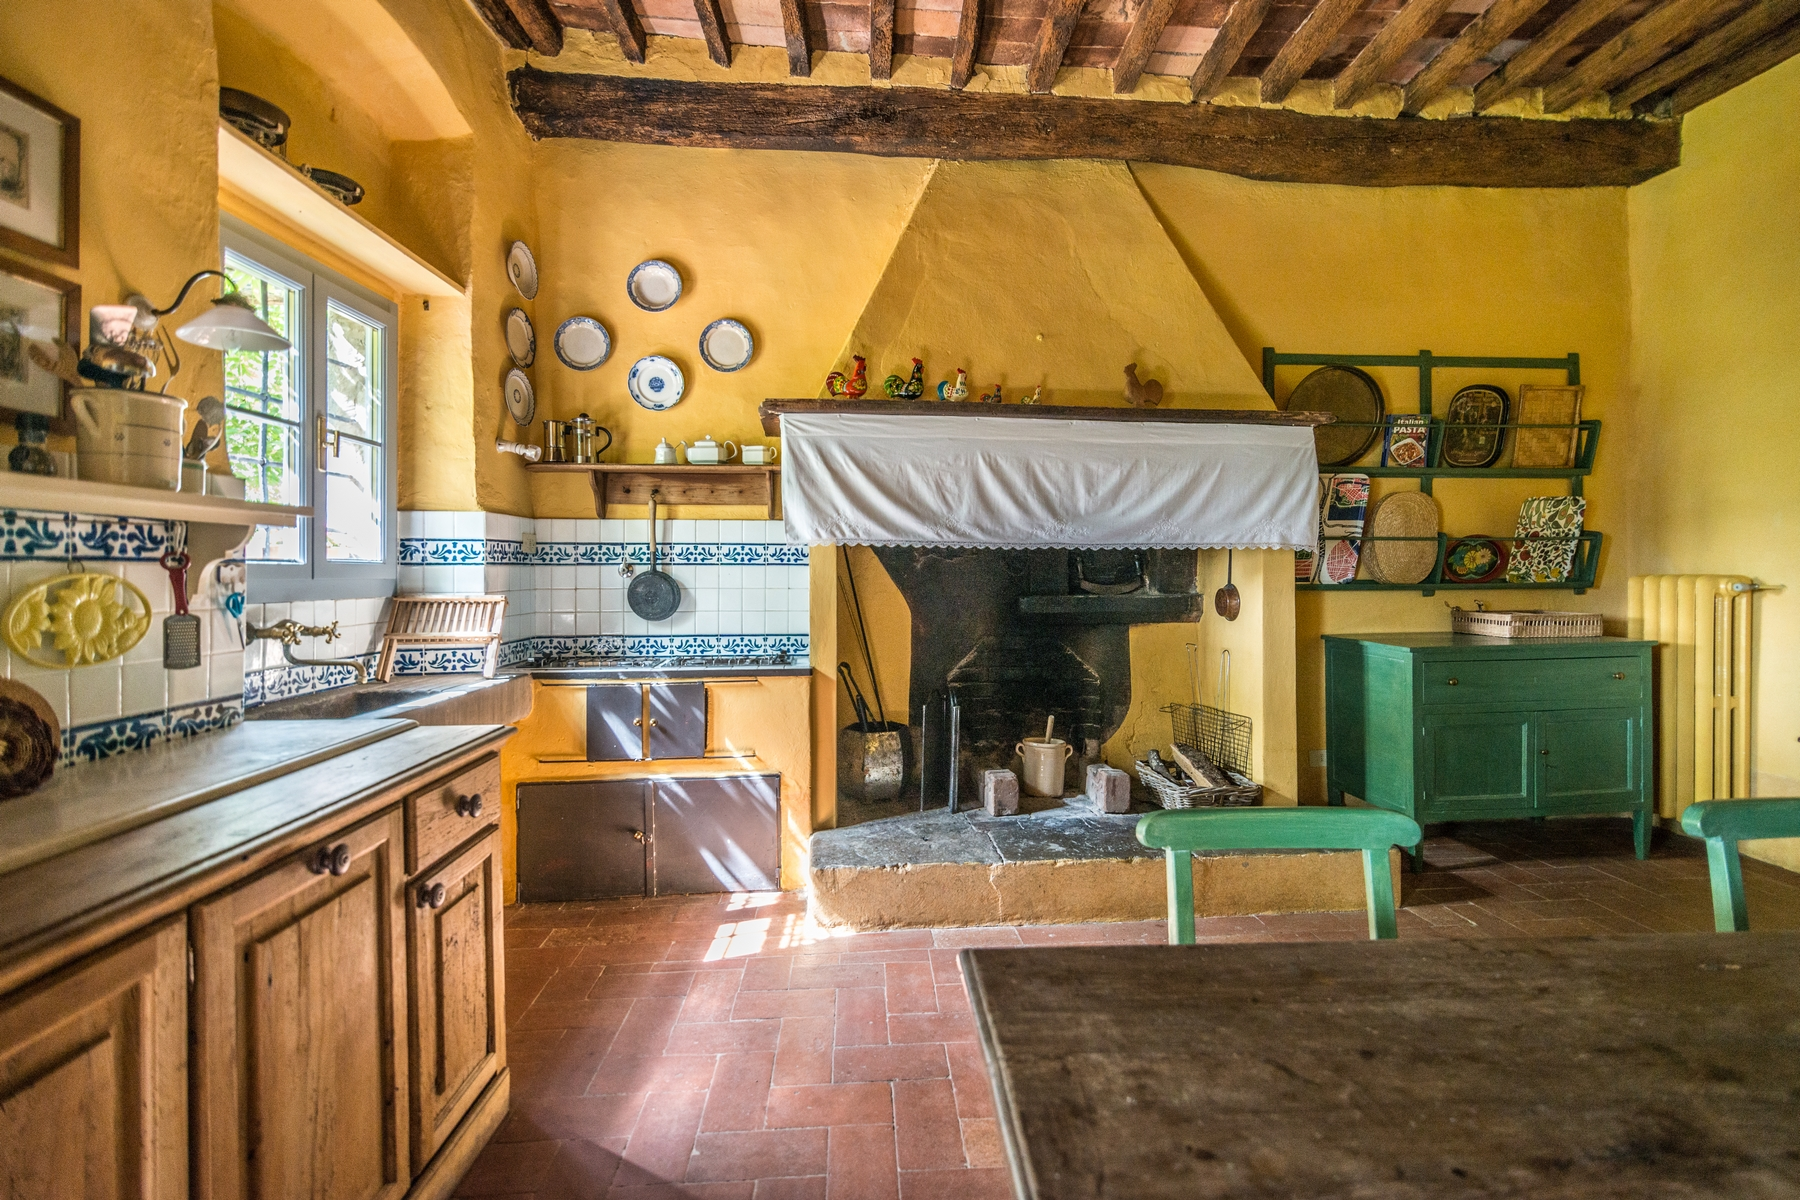 Additional photo for property listing at Beautiful renovated farmhouse with outbuildings Via Carniano Barberino Di Mugello, Florence 50031 Italy